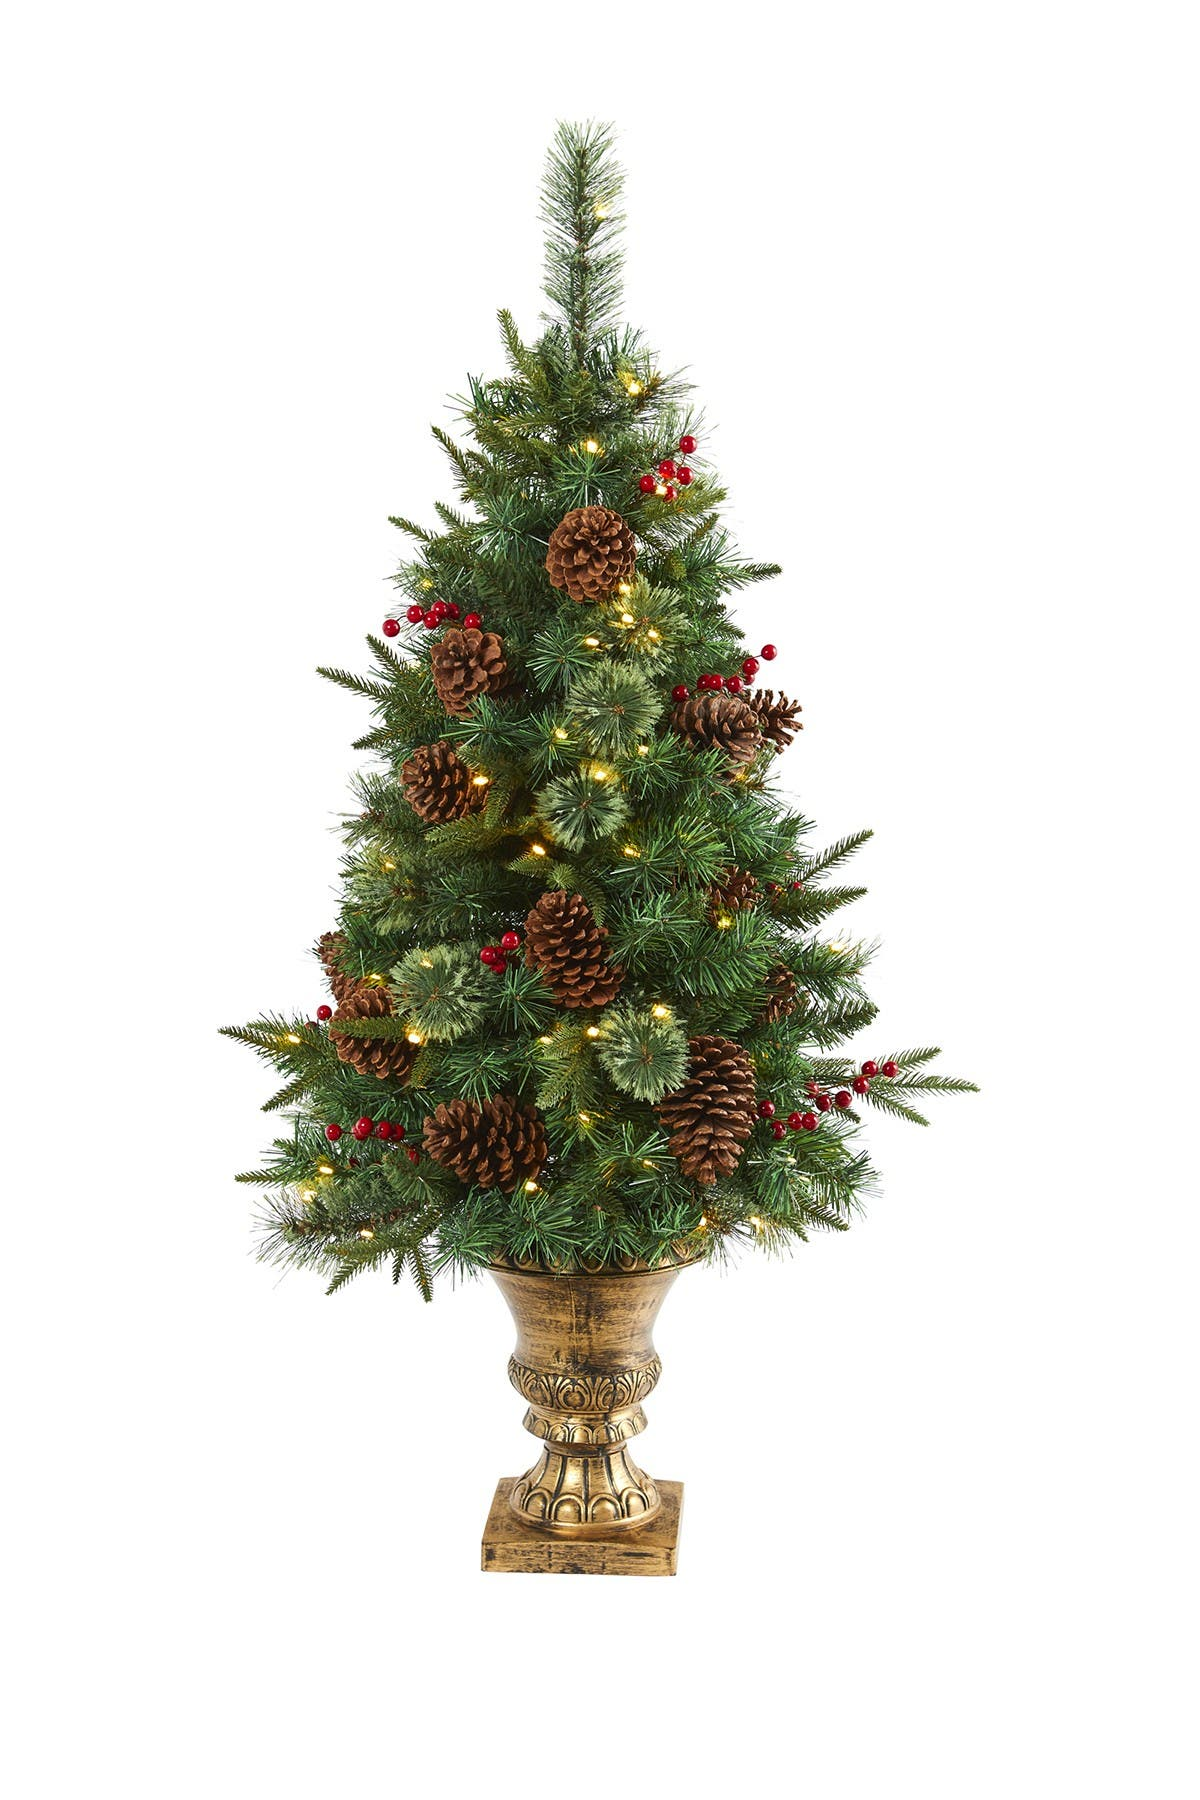 Image of NEARLY NATURAL 4ft. Pine, Pinecone and Berries Artificial Christmas Tree in Decorative Urn